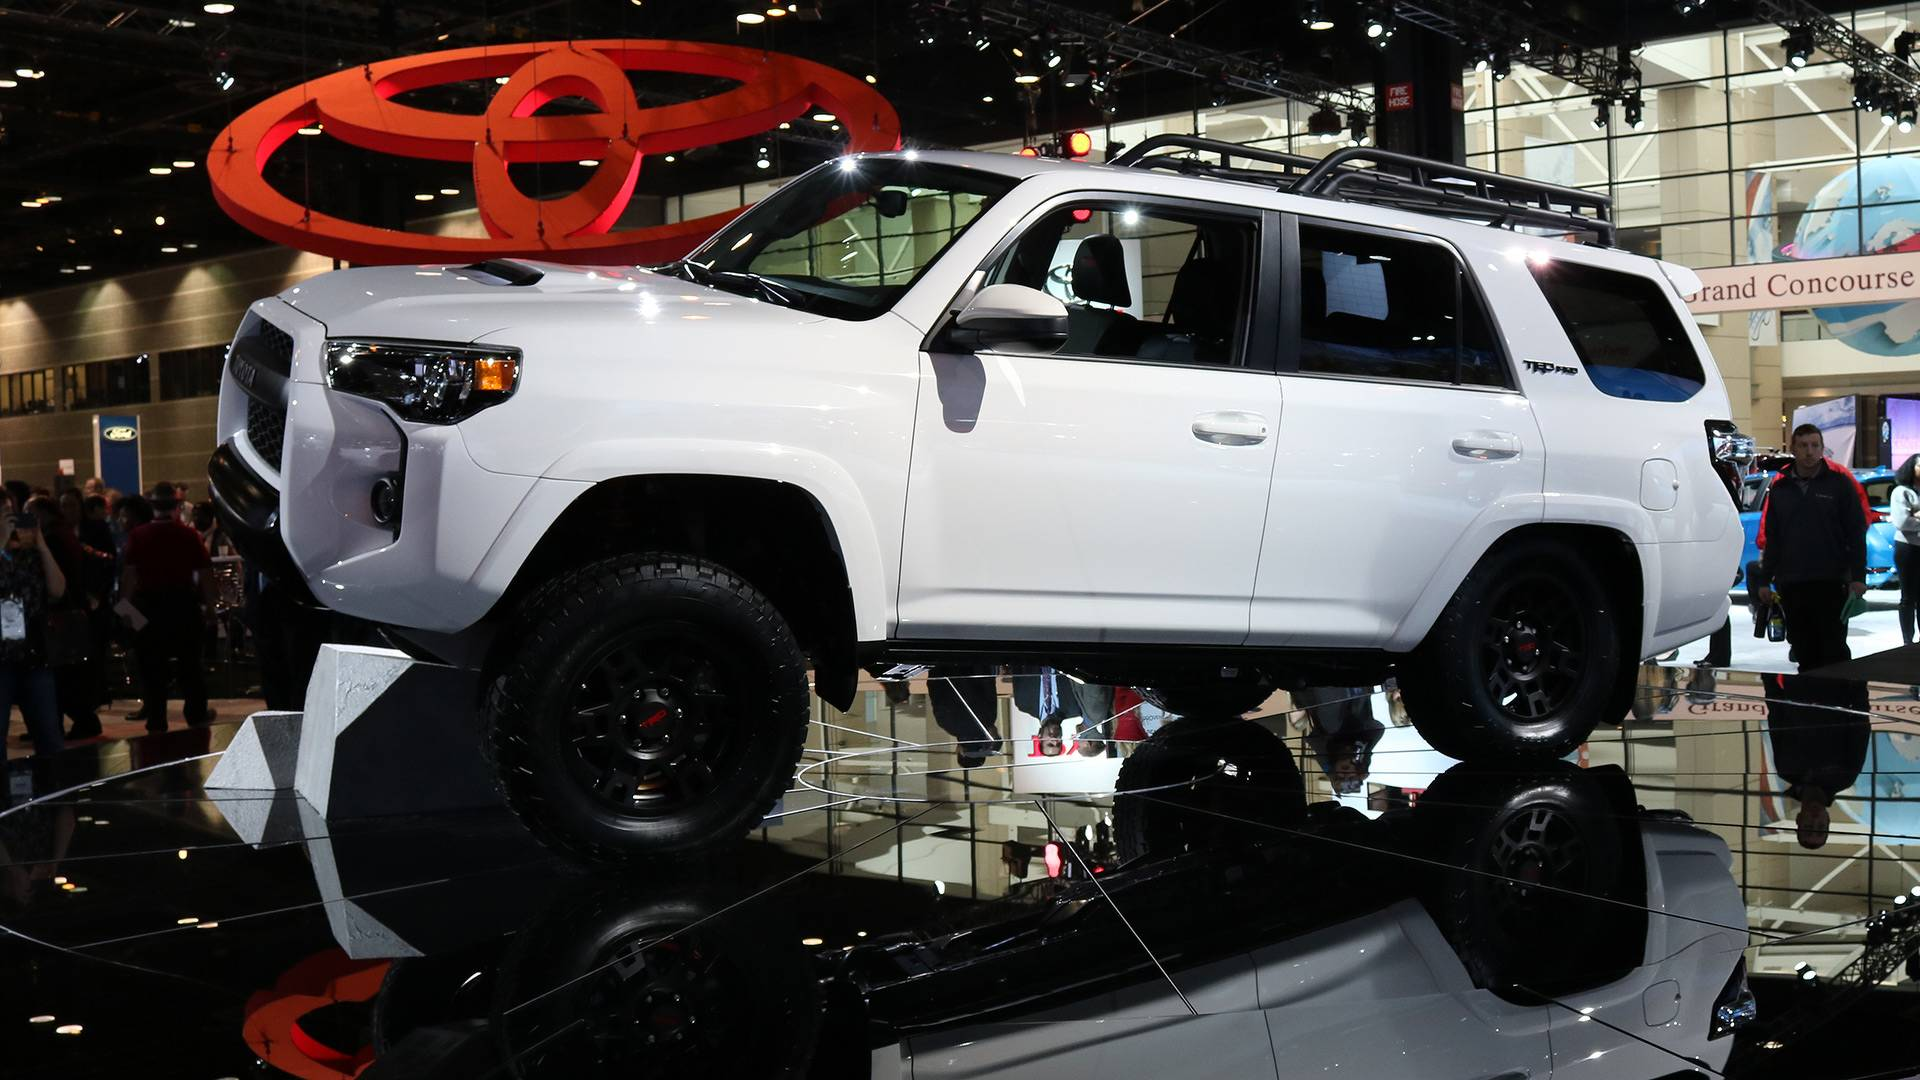 Toyota Trd Pro Lineup Get Fox Shocks To Work Even Better Off Road